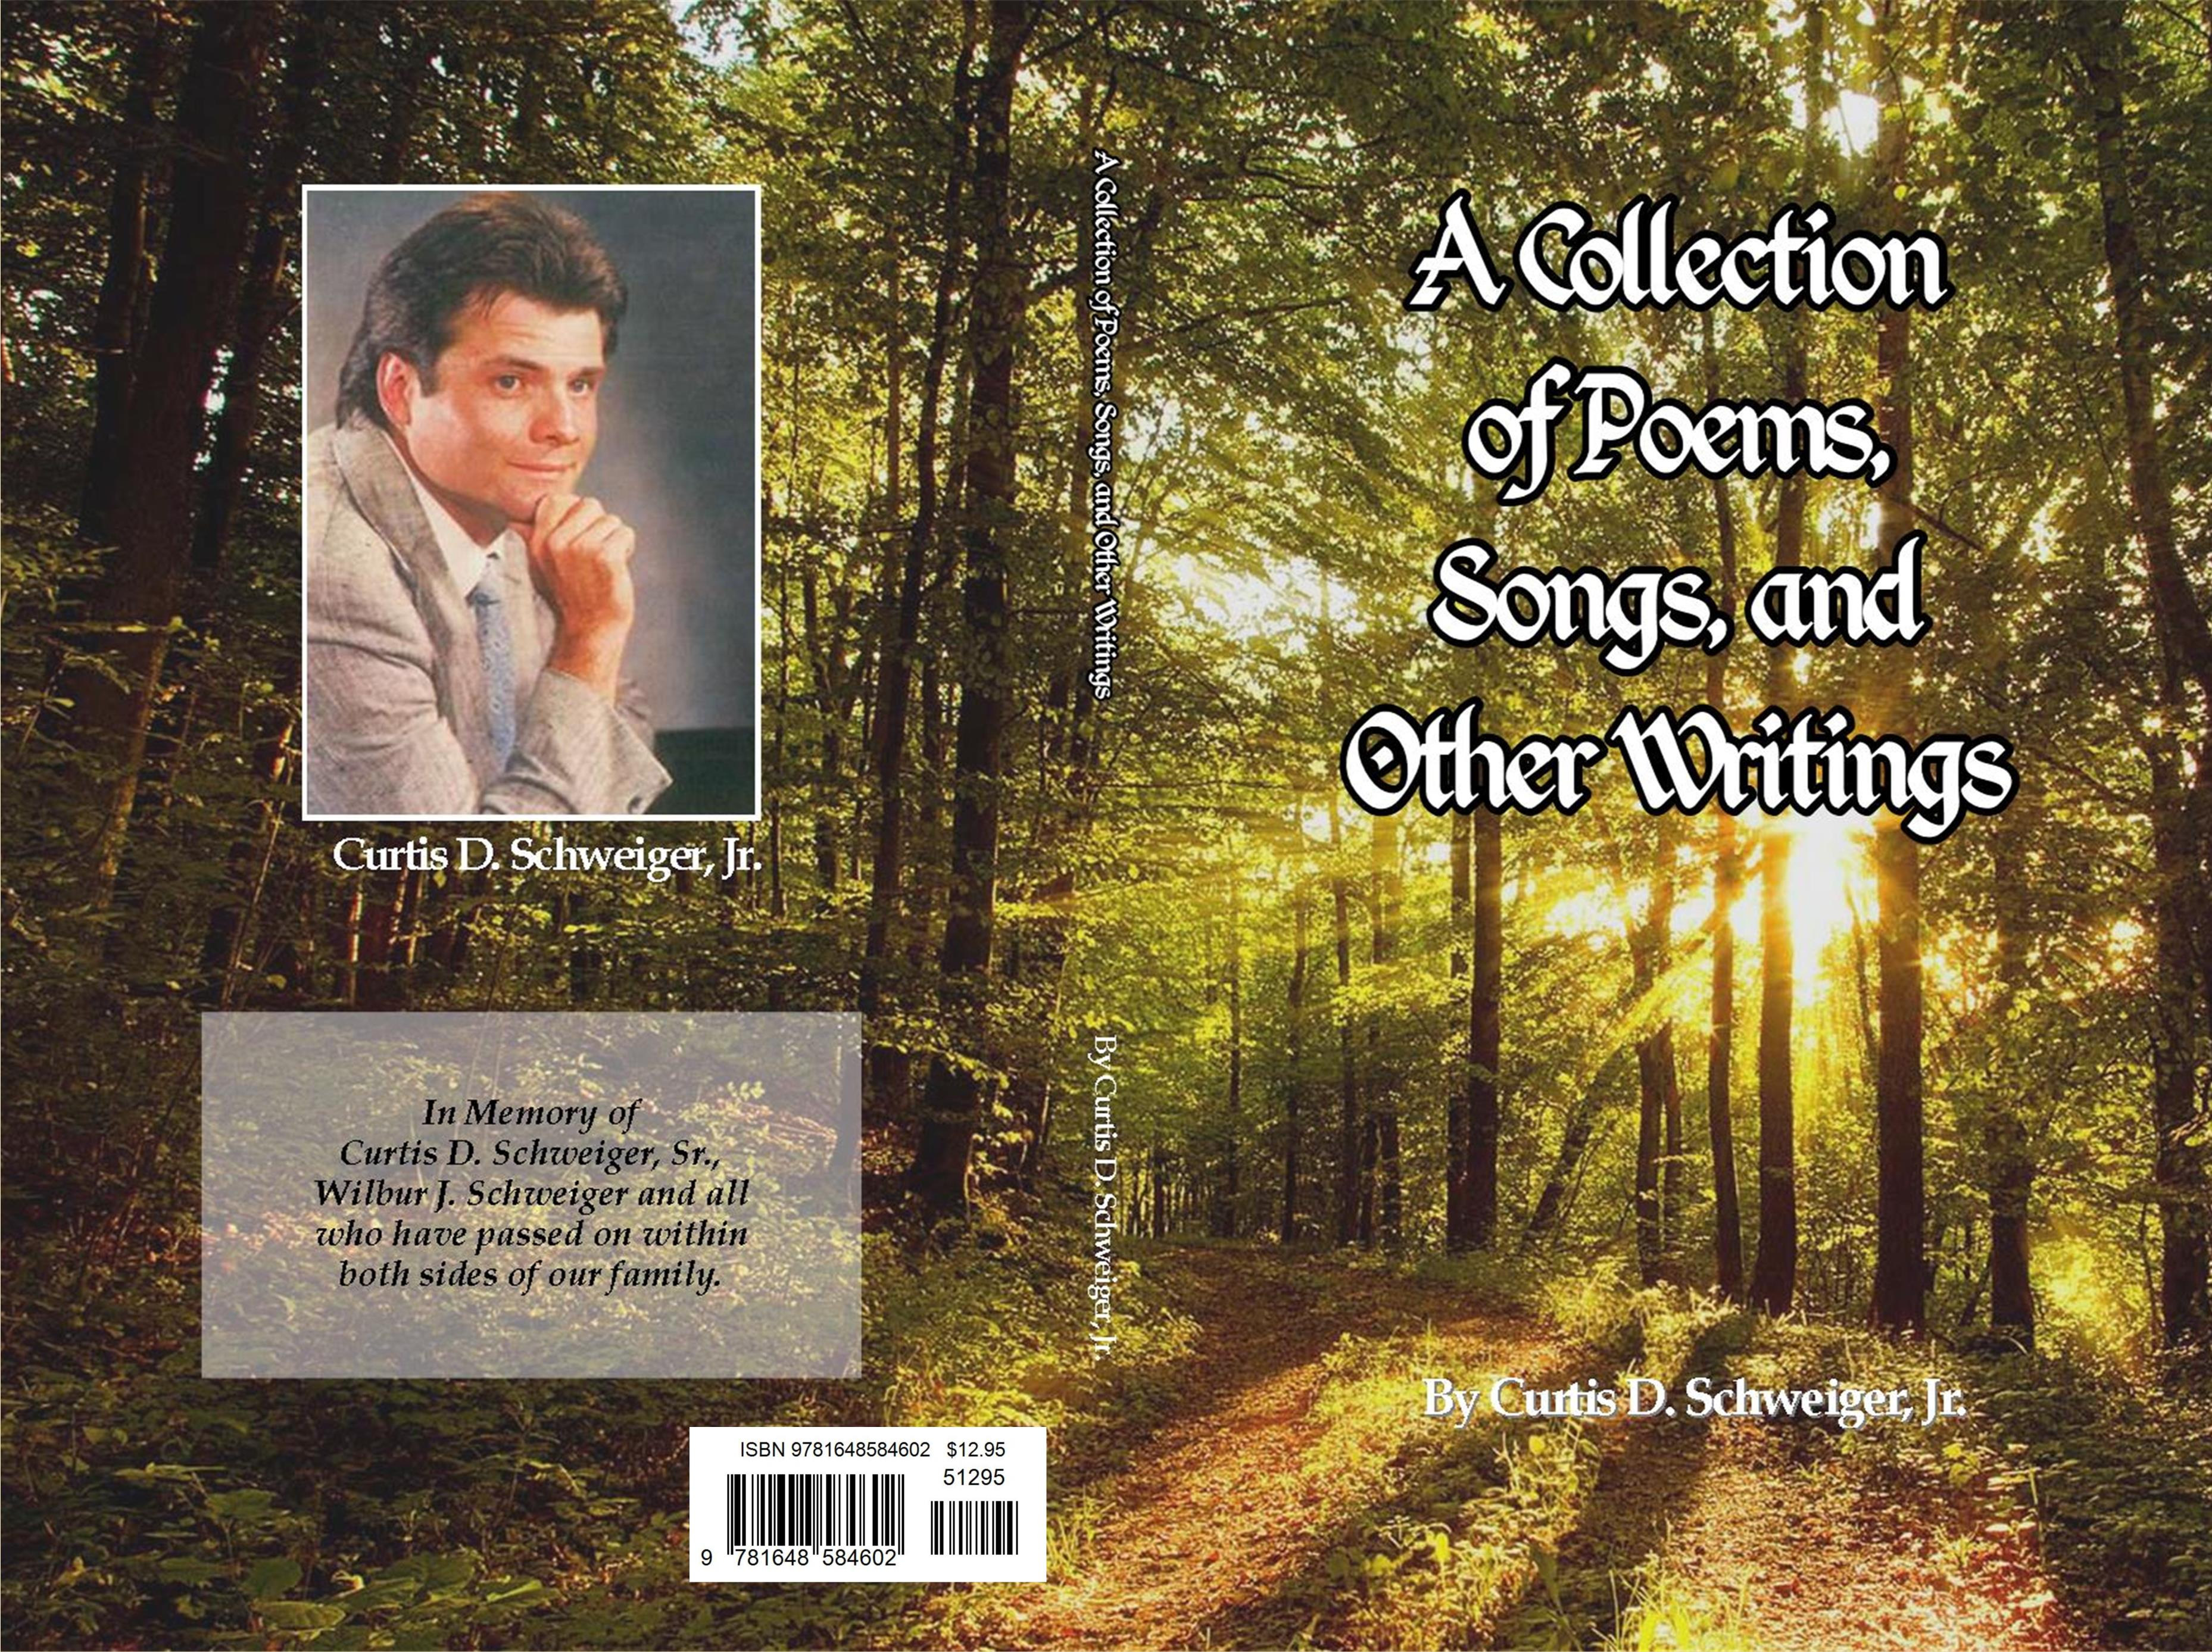 """A collection of poetry songs and other writings by curtis schweiger jr"" cover image"